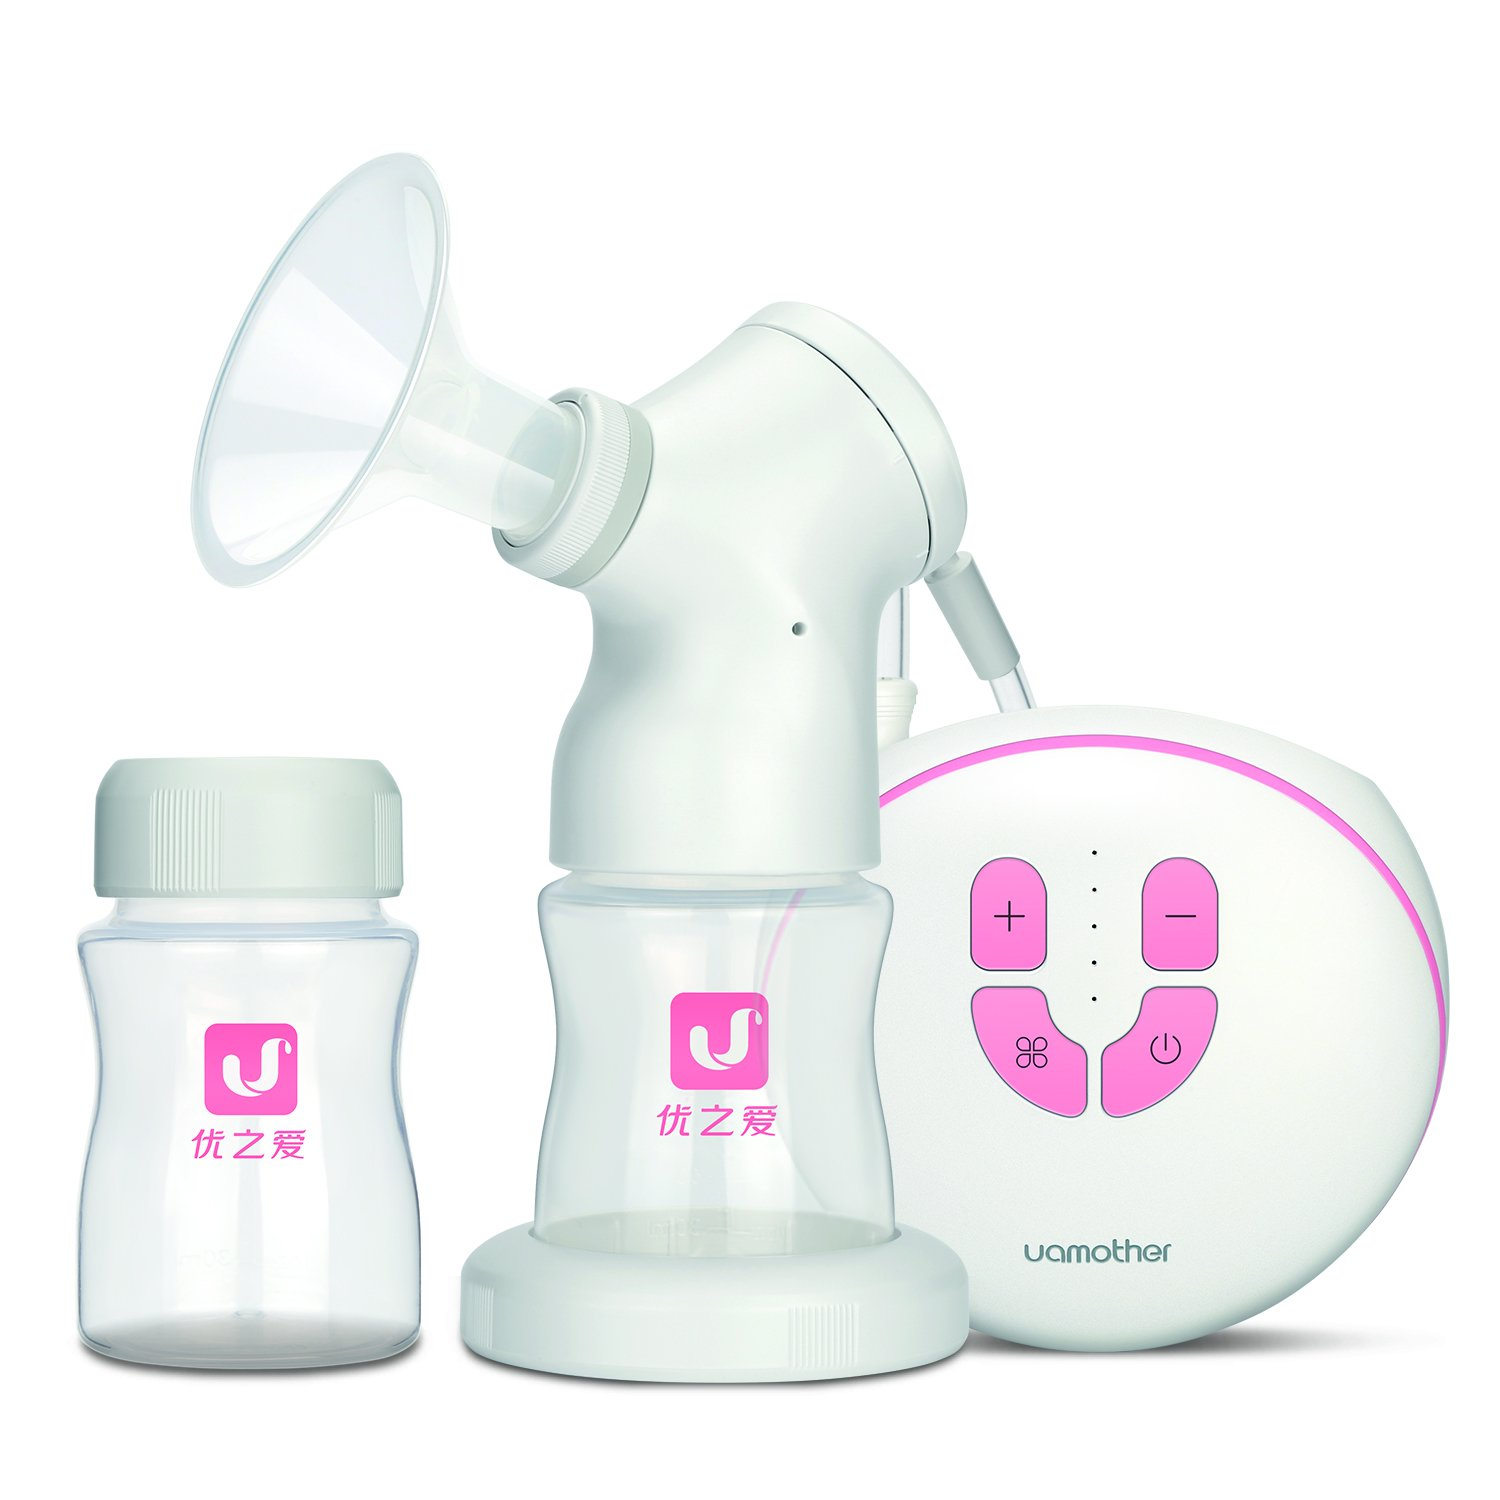 Electric Breast Pump with Vacuum Lid for Baby Feeding's Breastmilk Vacuum Preservation in White/Pink by Maternal-Baby Uamother U802